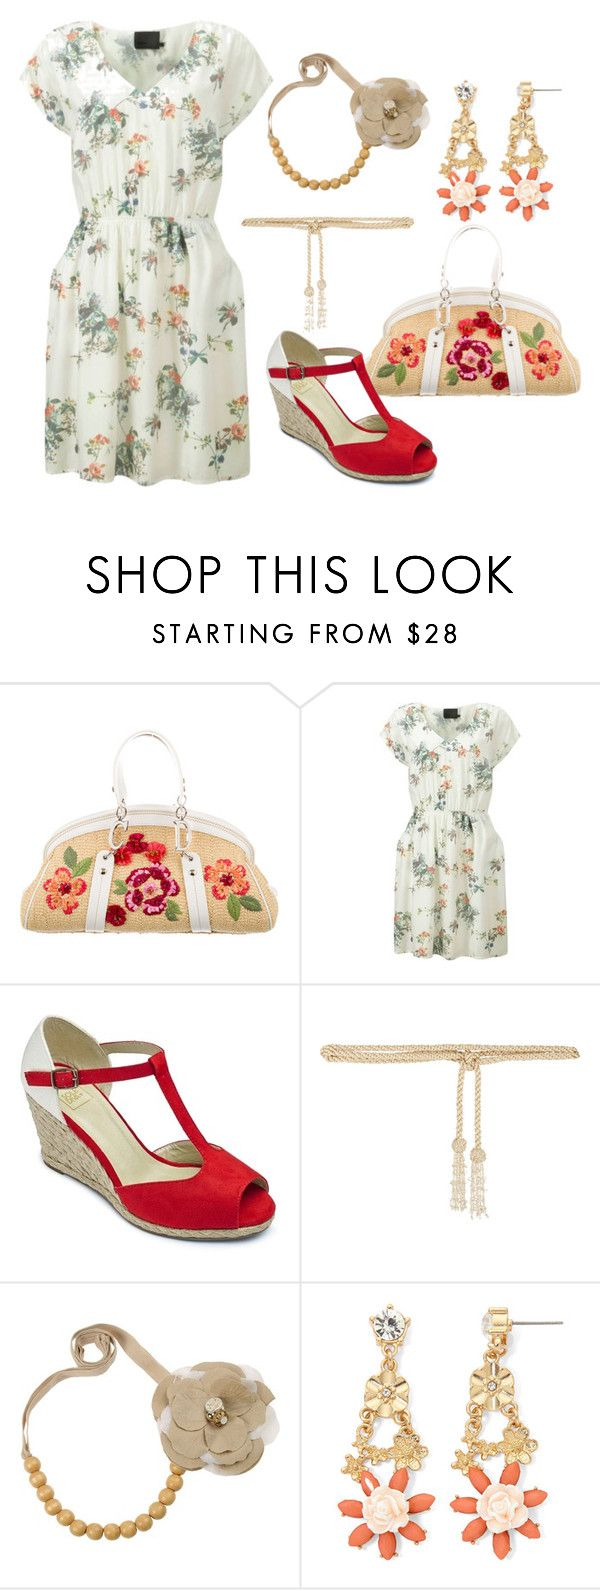 """НС - Сельский стиль 1"" by look-comskaya ❤ liked on Polyvore featuring Christian Dior, Minimum, Valentino, Gemma Simone, women's clothing, women, female, woman, misses and juniors"